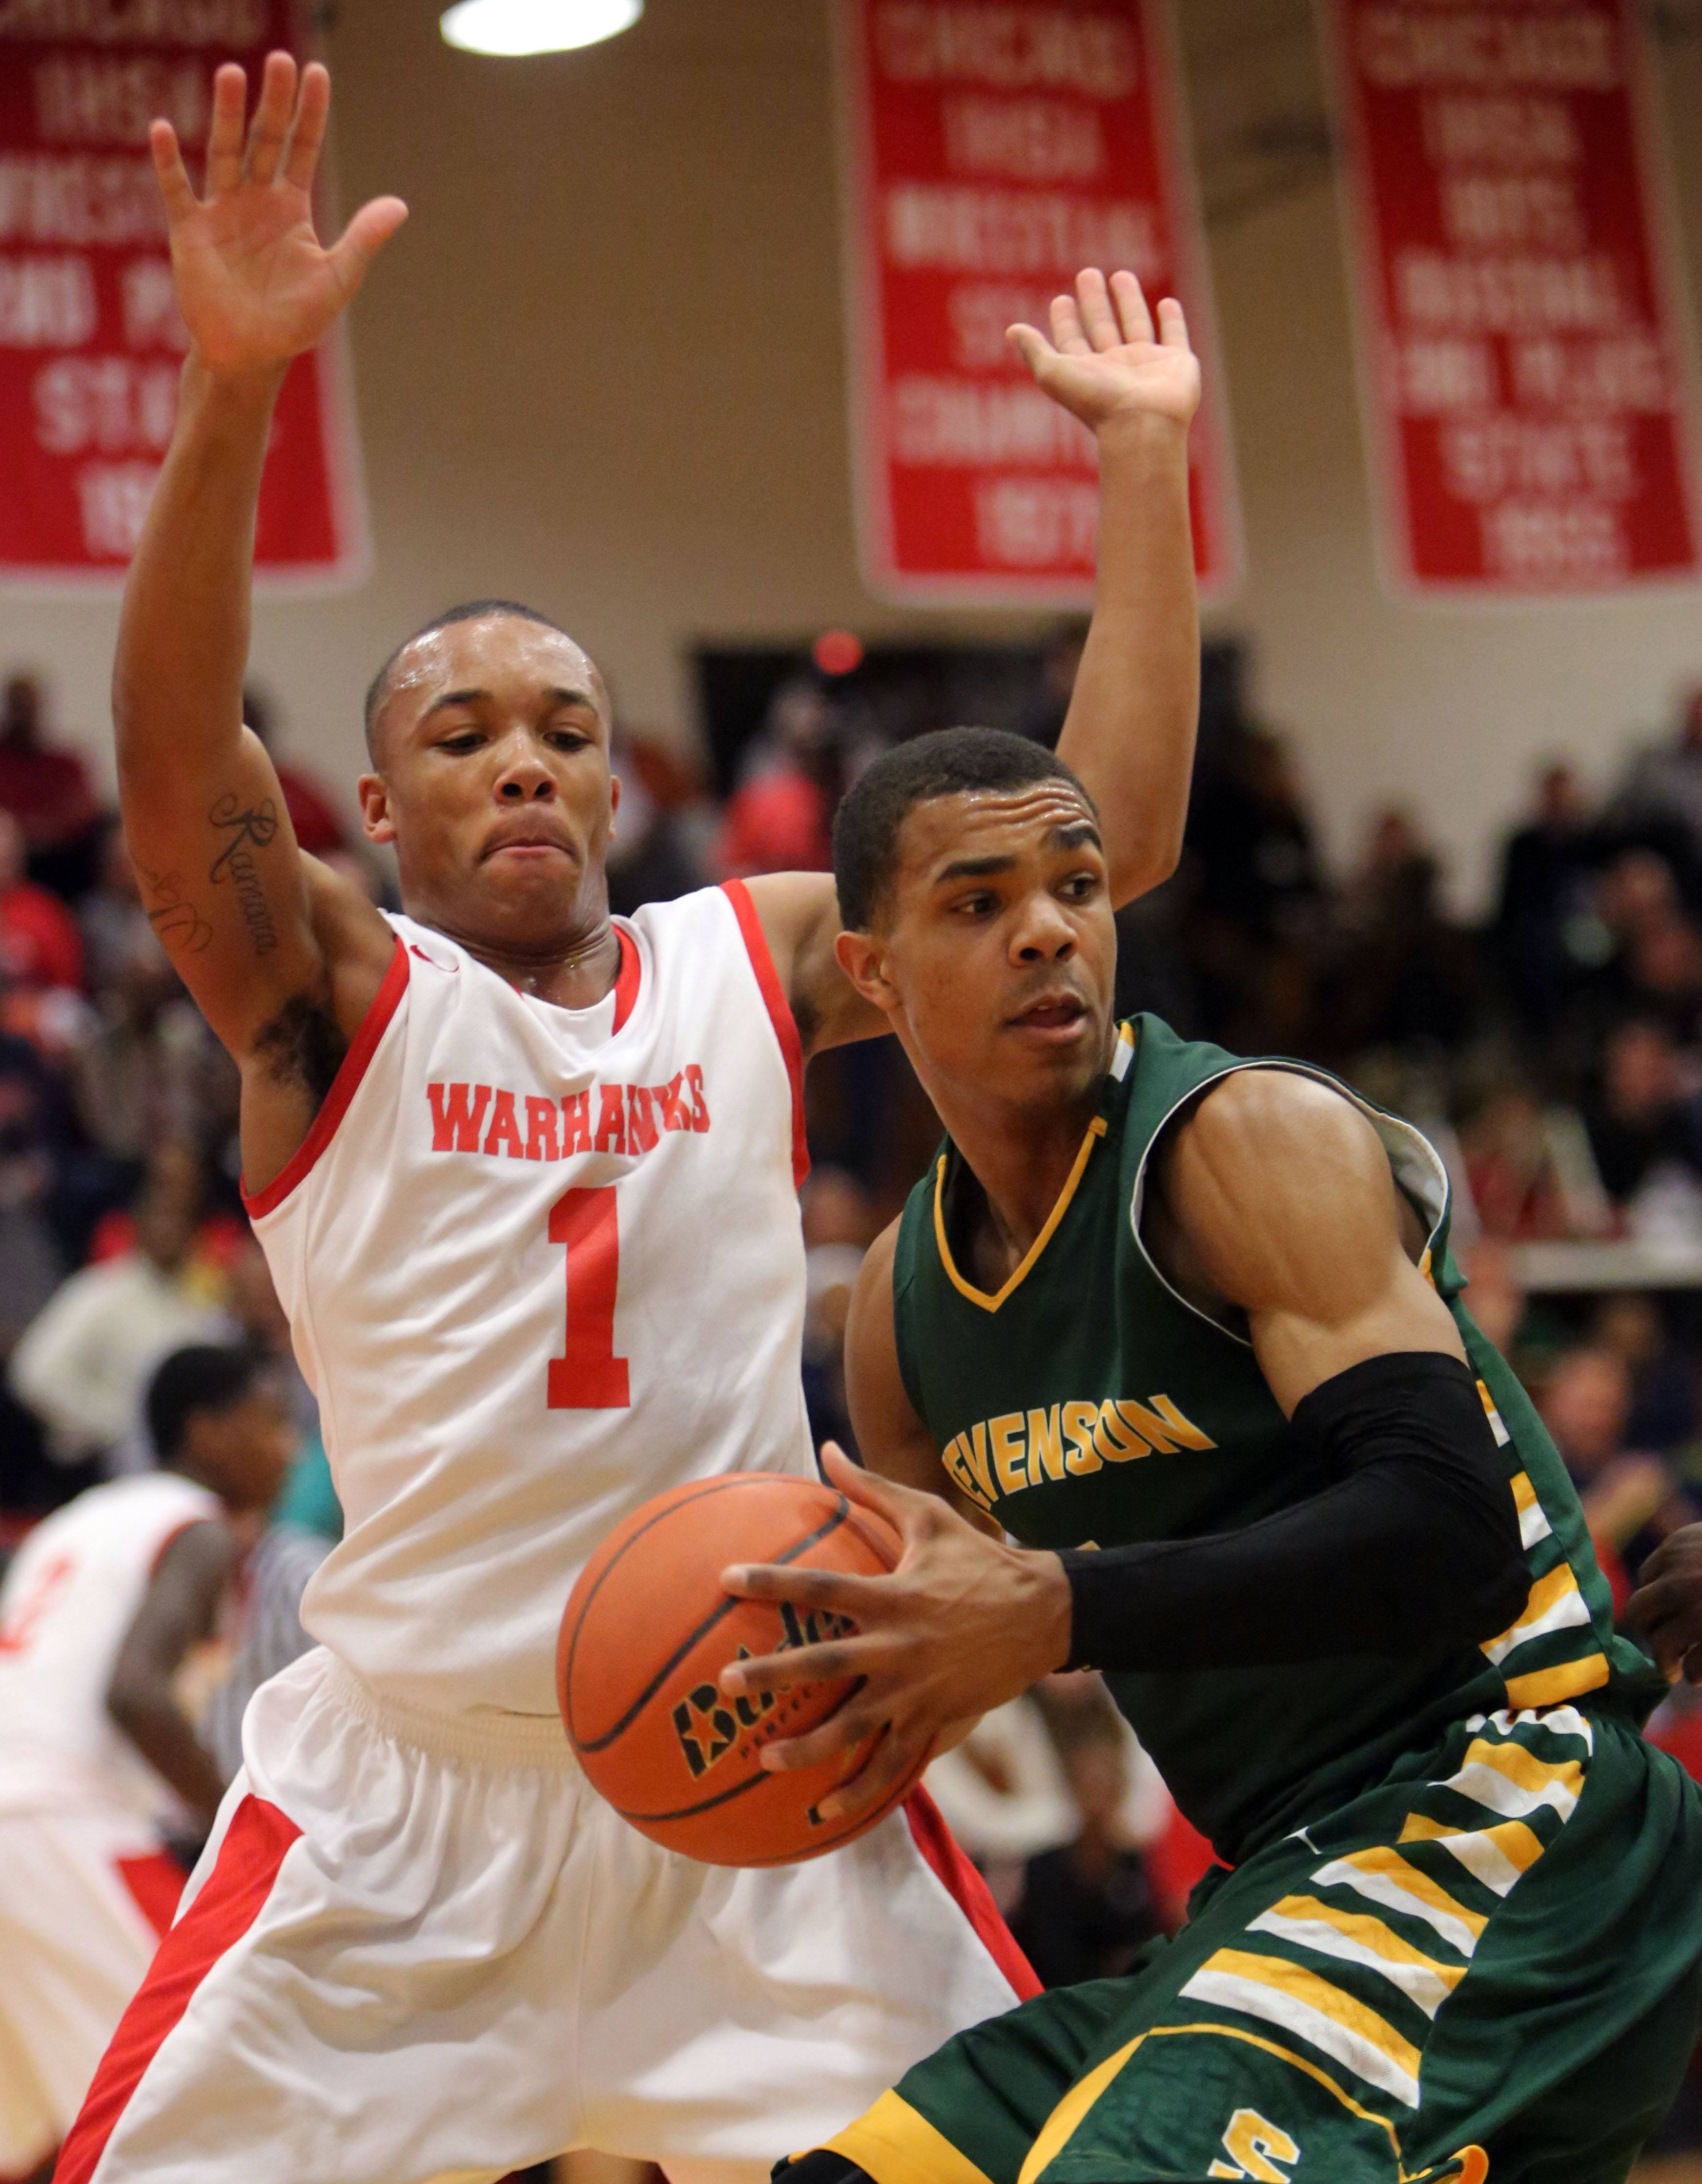 Stevenson's Connor Cashaw, right, drives in on North Chicago's Arnold Shead.